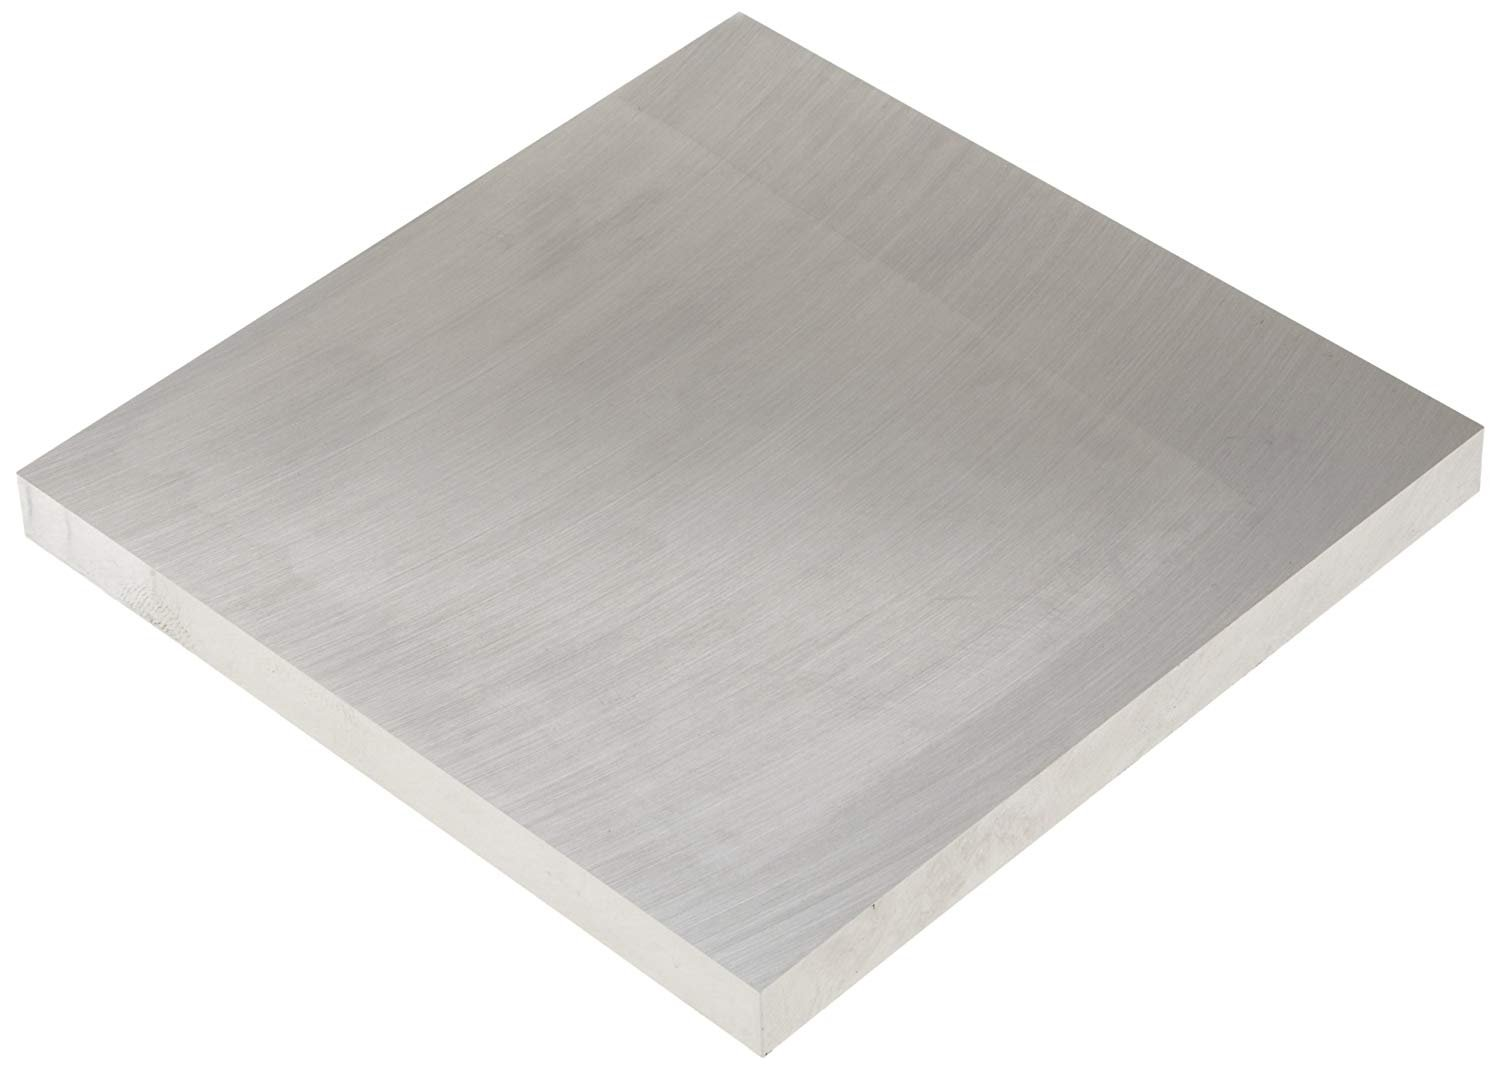 Precision Ground and Milled Plate 2.000 X 3.000 X 6.000 6061-T651 Aluminum